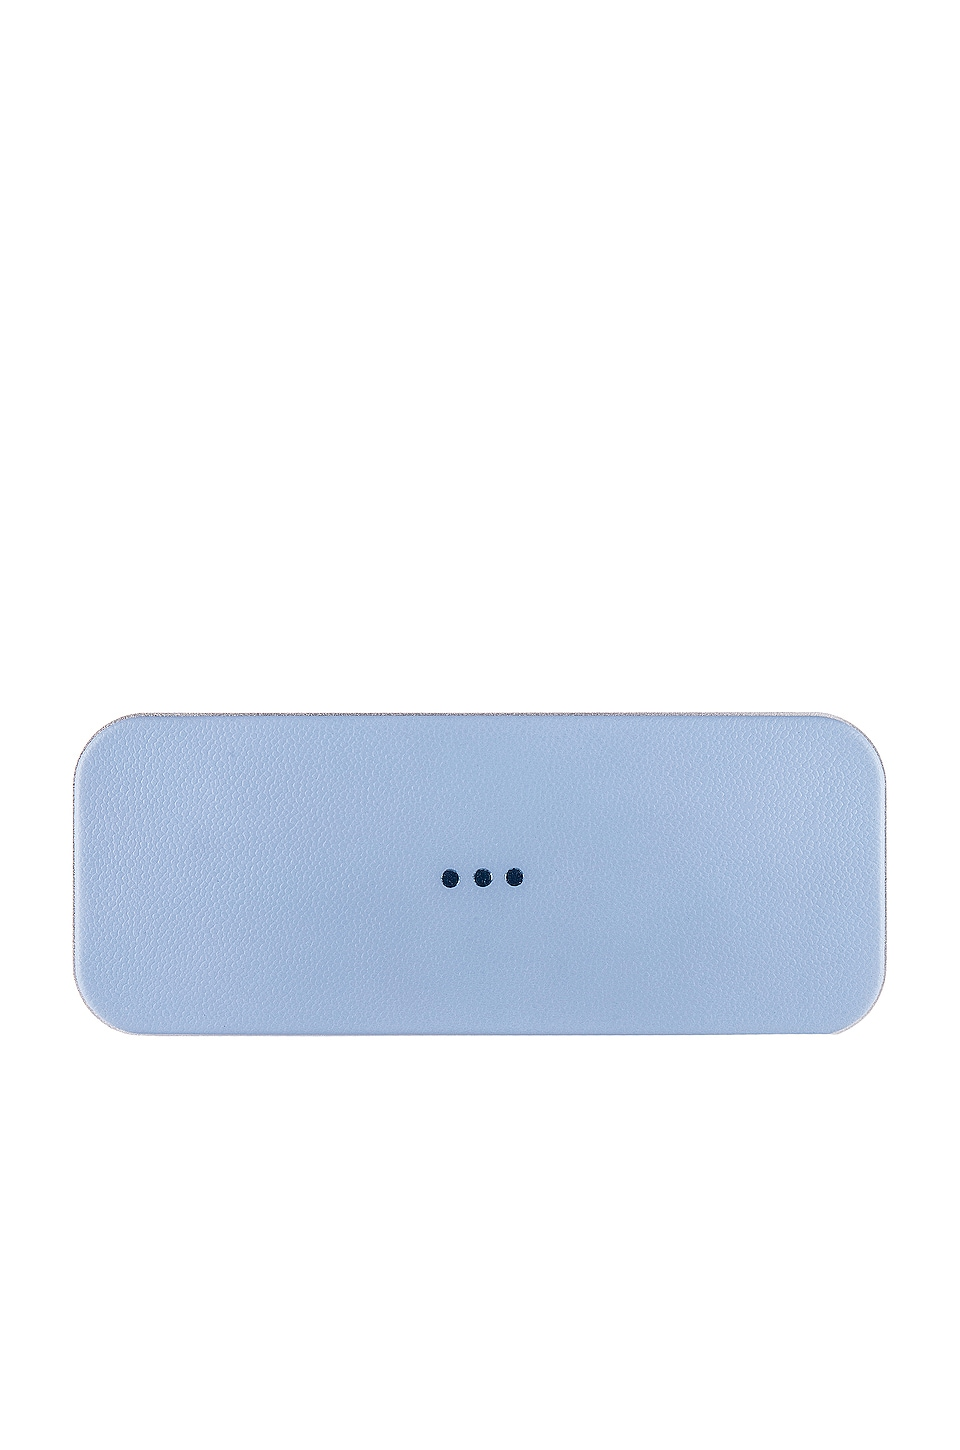 Courant Catch:2 Wireless Charging Tray in Pacific Blue